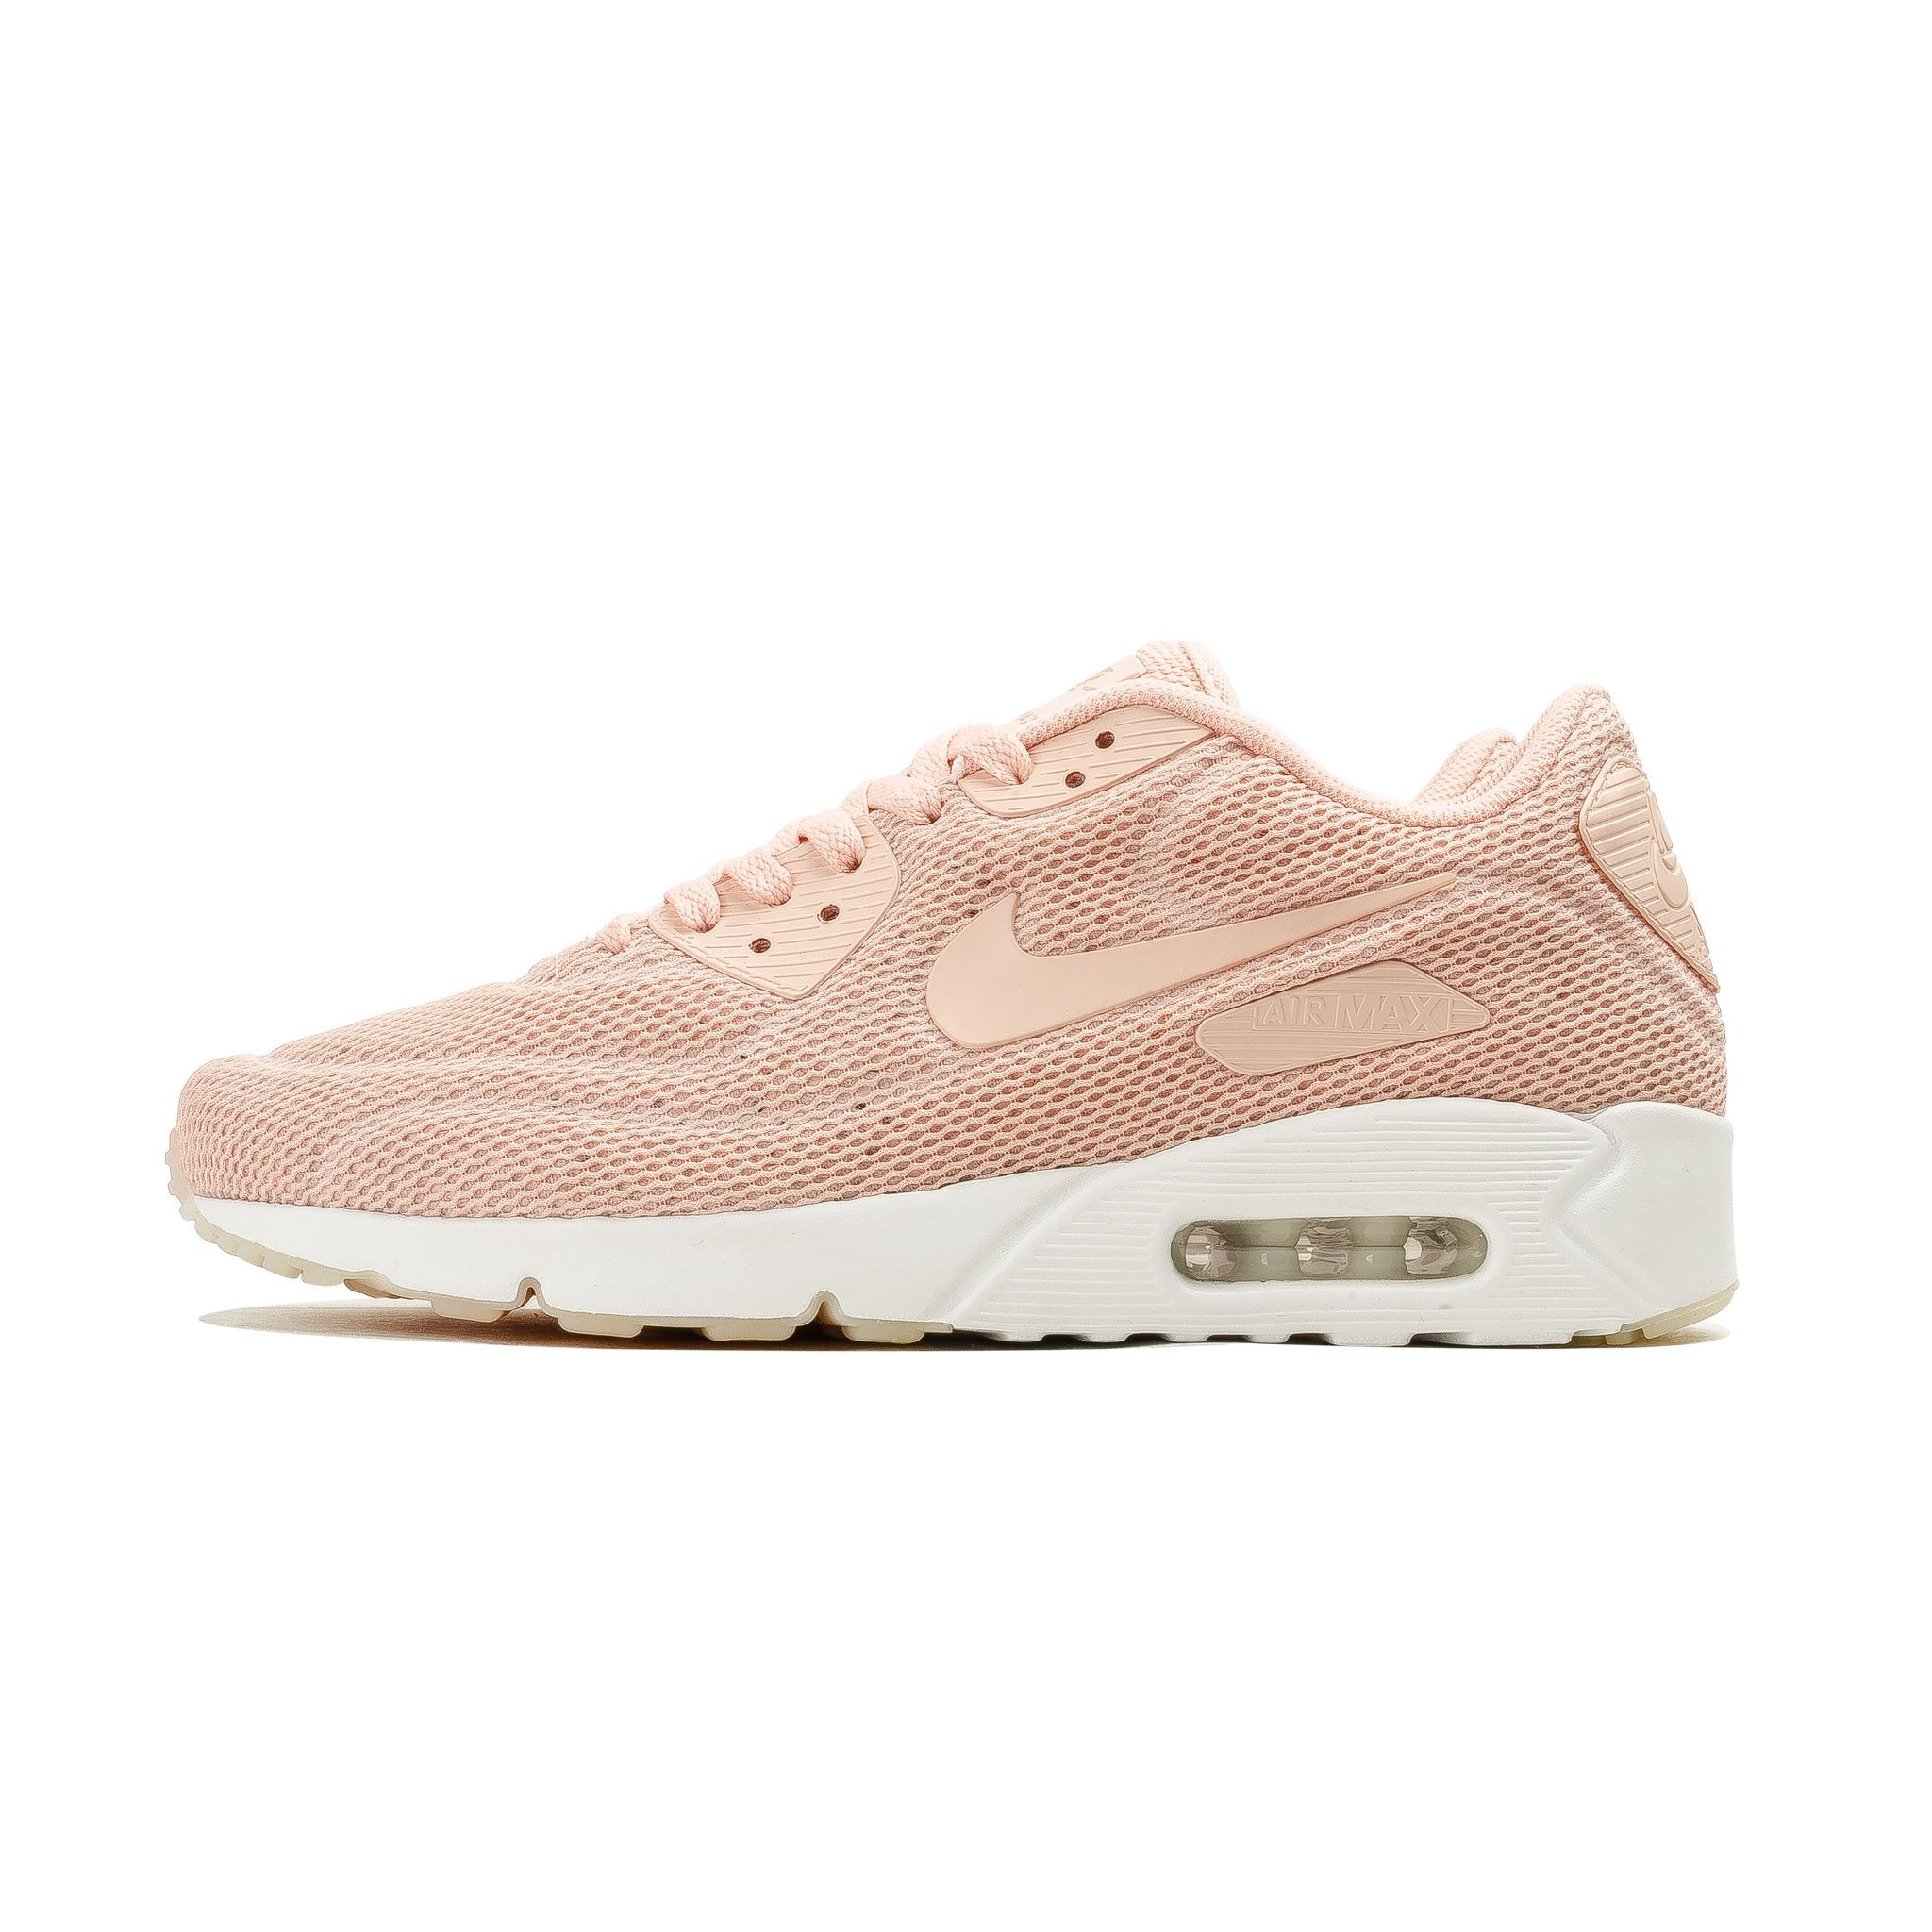 Nike Air Premium Max 90 Ultra 2.0 BR Casual Shoes Arctic